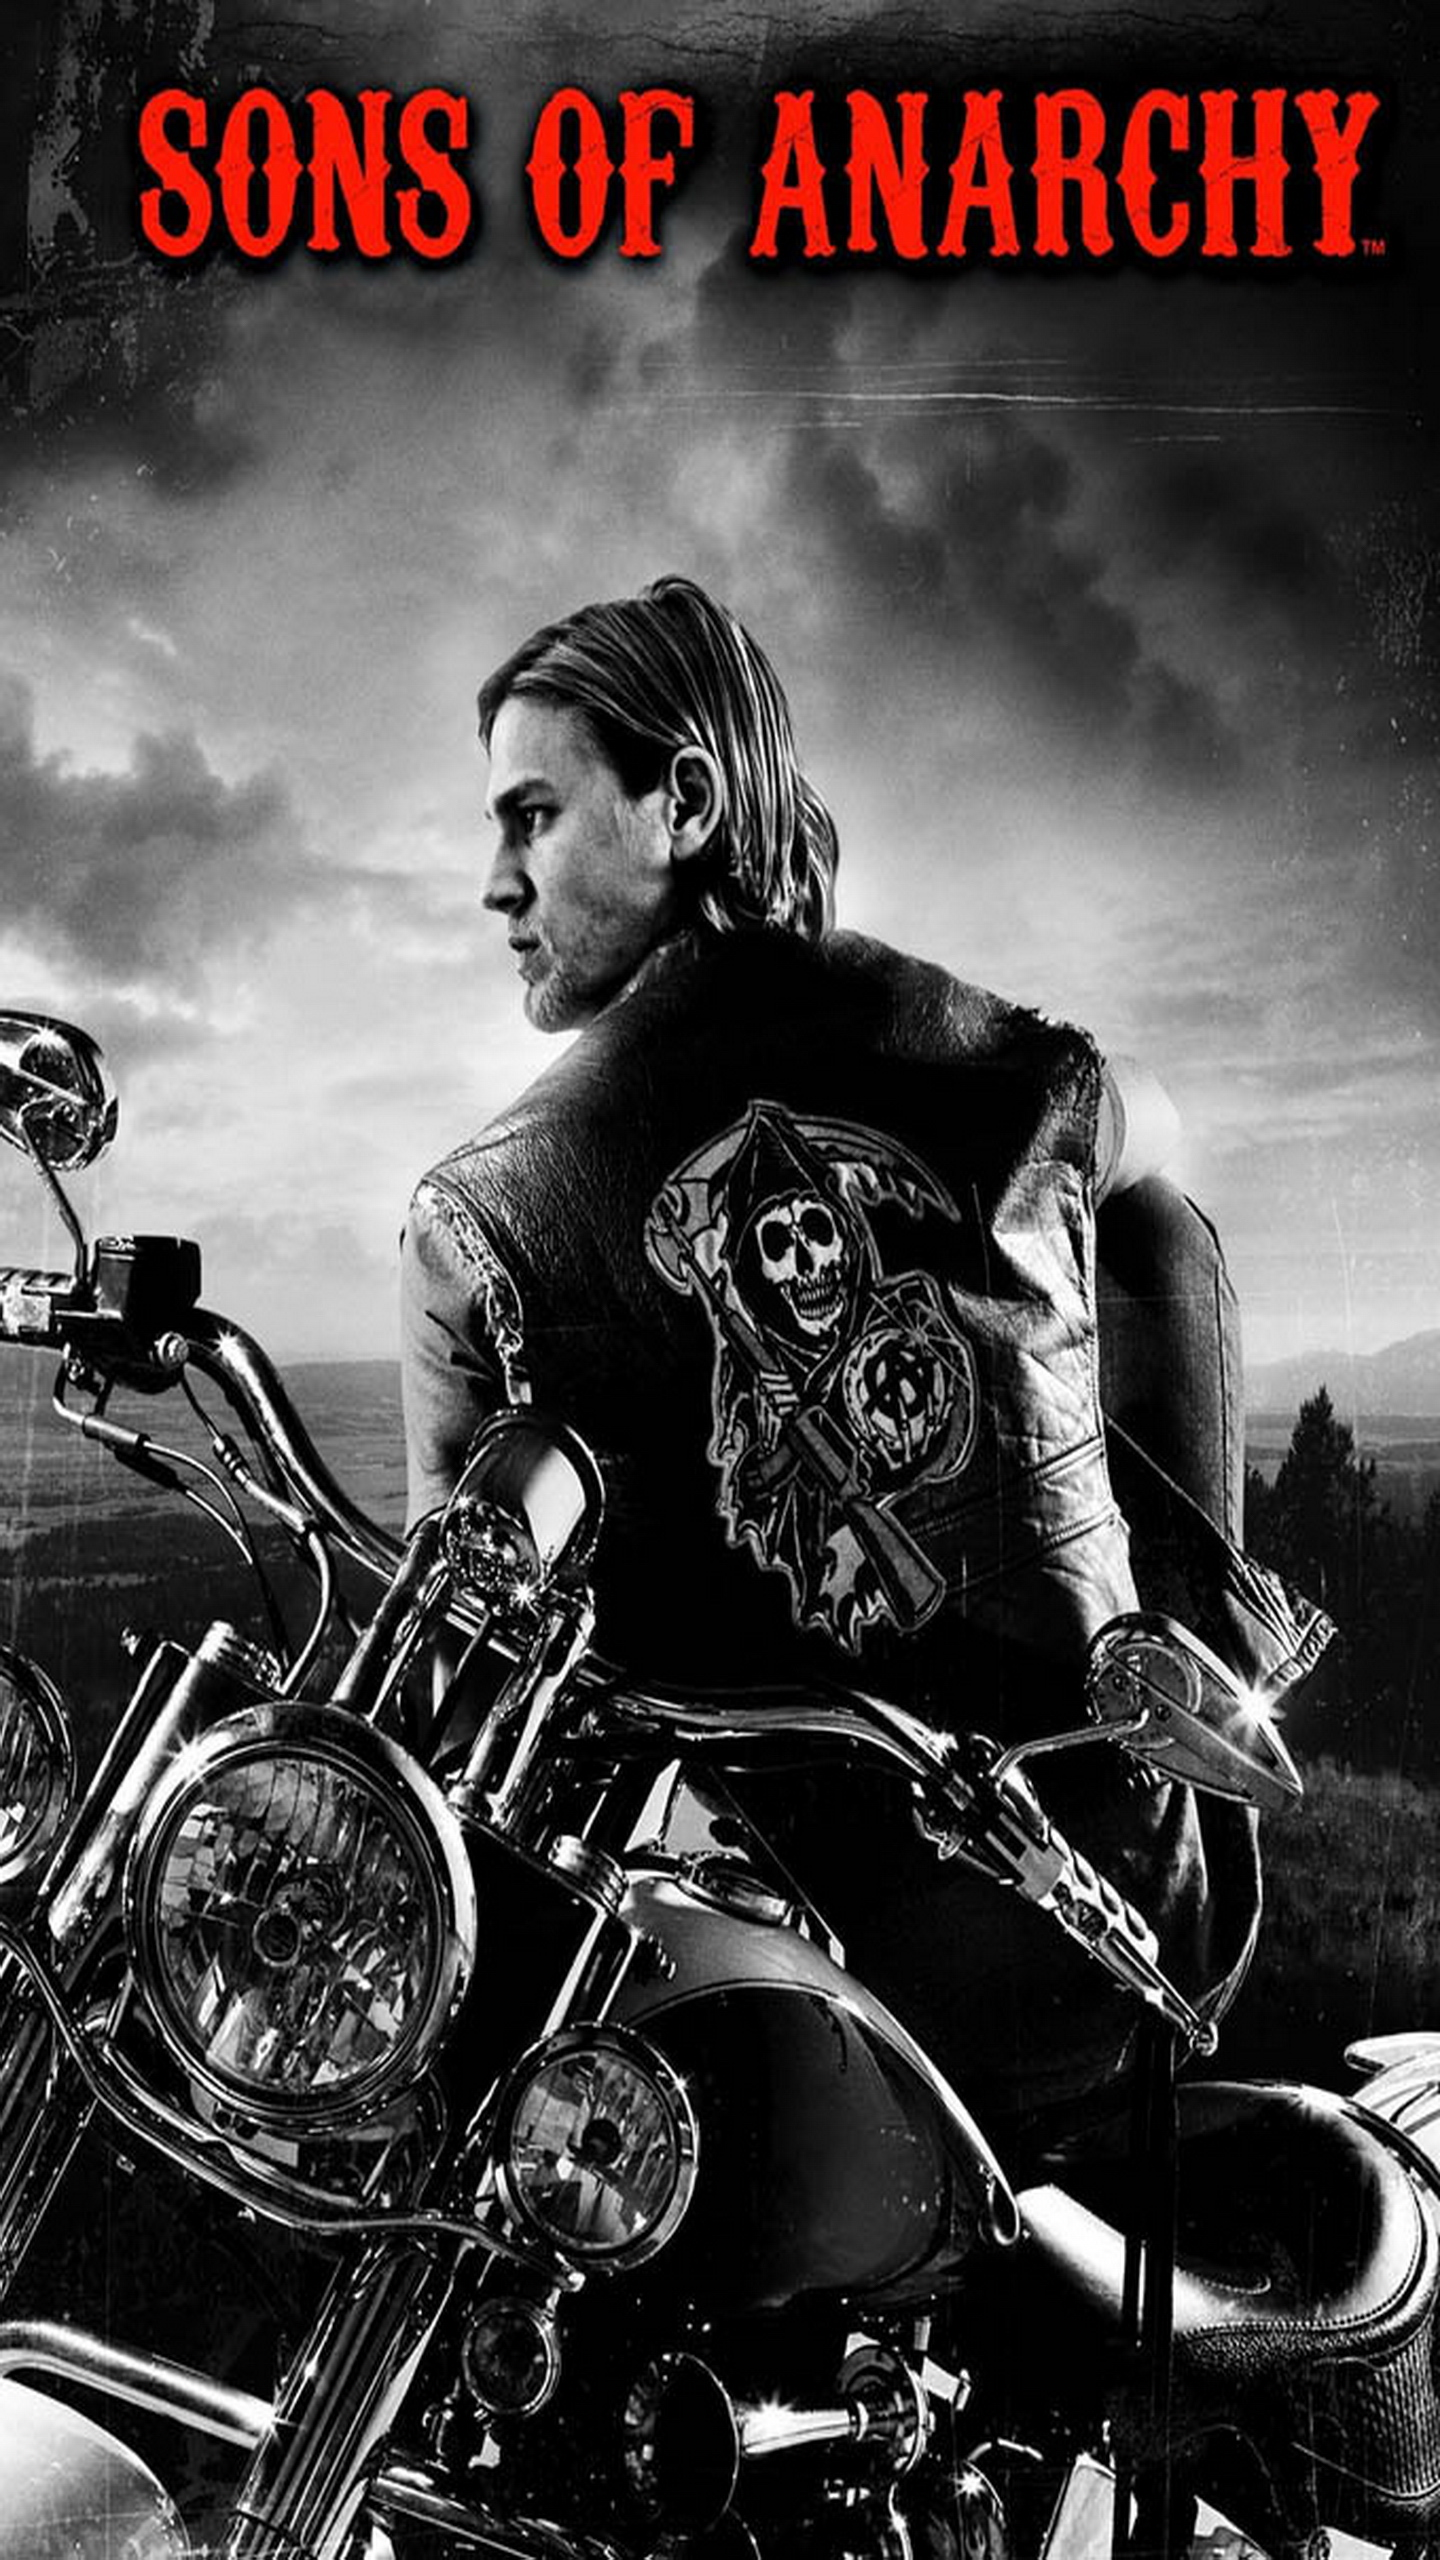 Free Download Sons Of Anarchy Hd Wallpaper 1440x2560 For Your